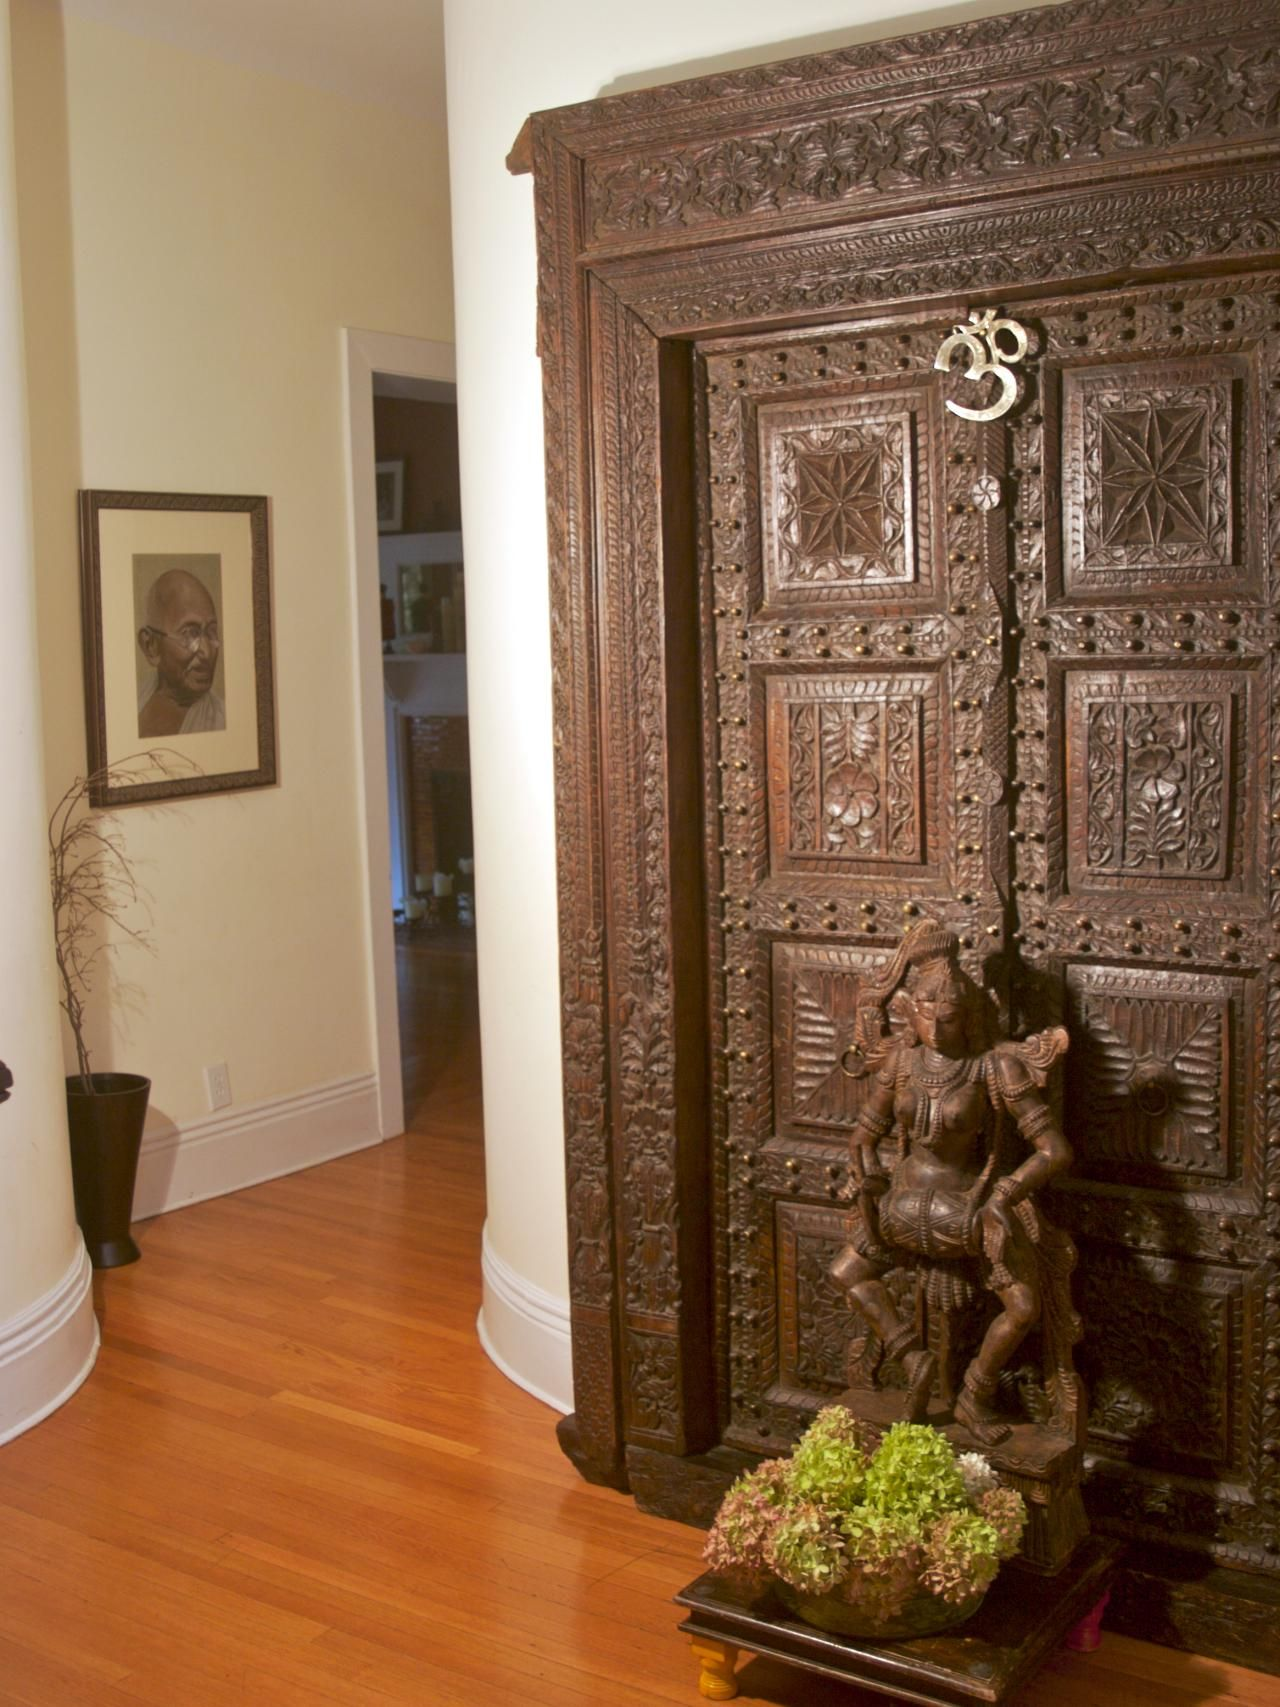 Indian Inspired Decorating 12 Spaces Inspired By India Statue Of Gandhi And Hindus